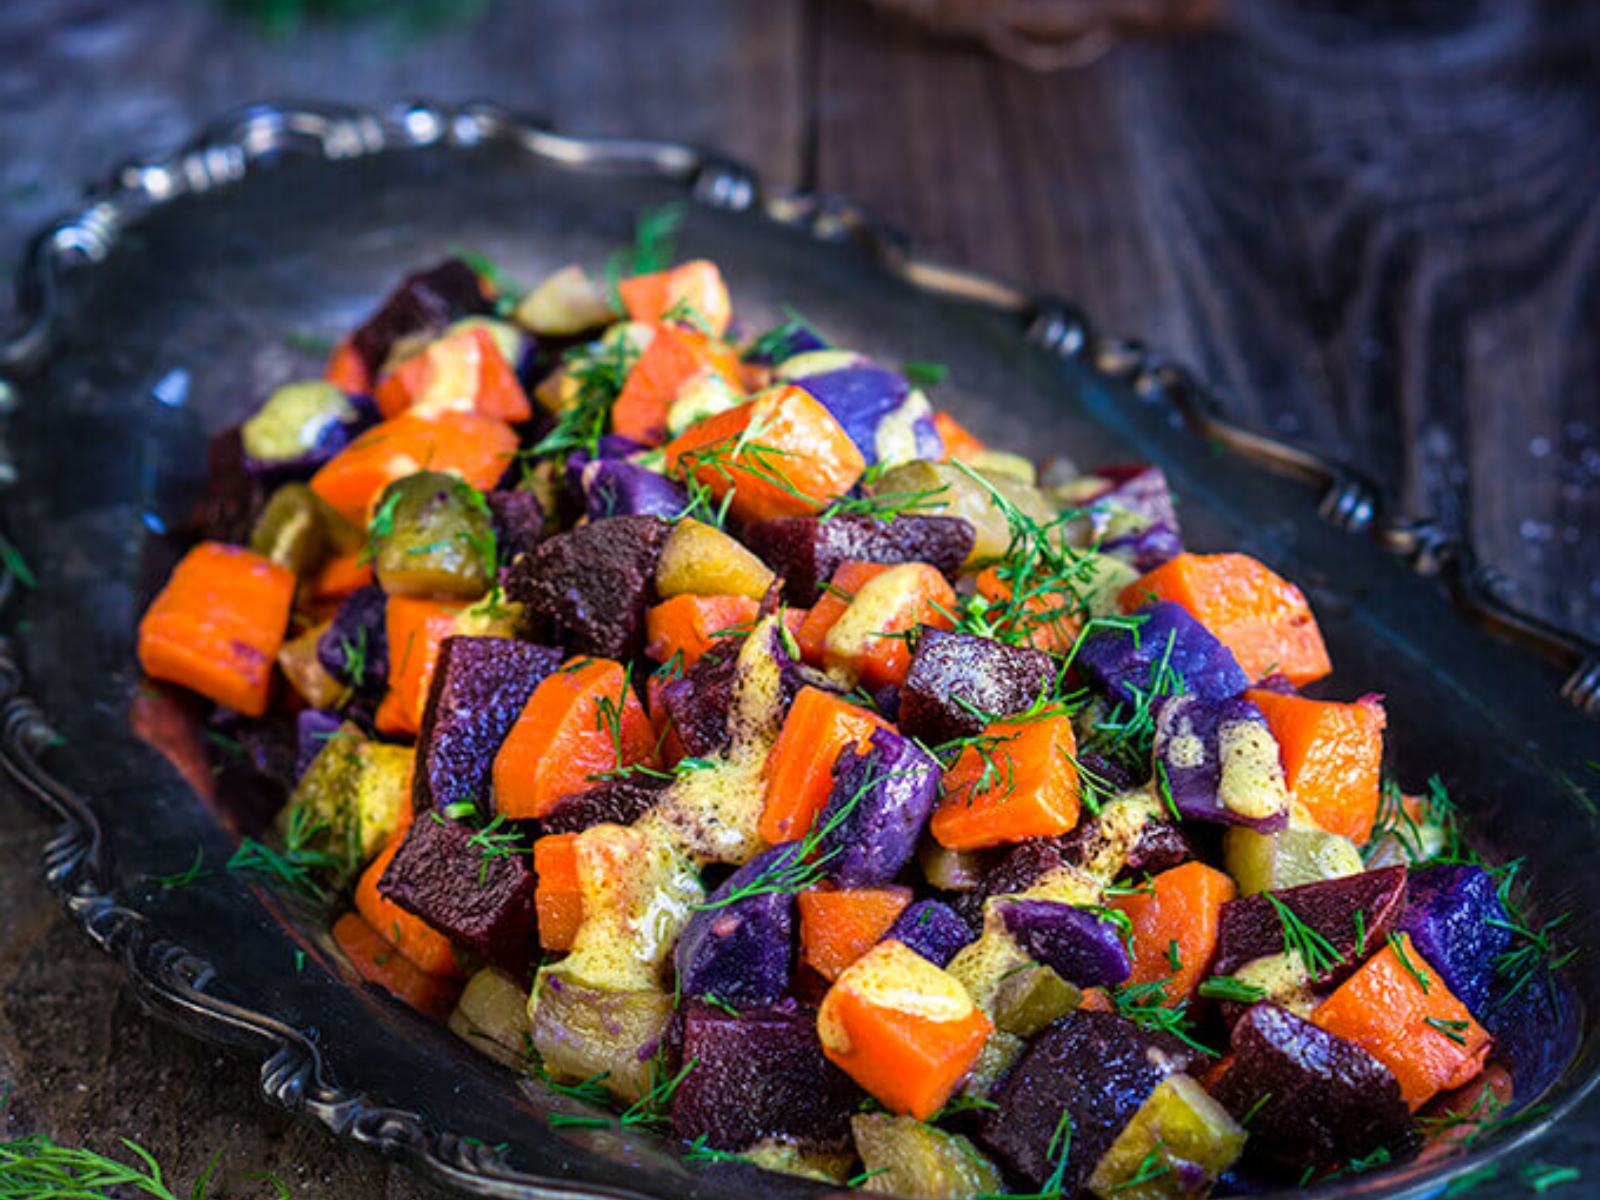 Vegan Carrot Beet Salad With Mustard Garlic Vinaigrette and Dill